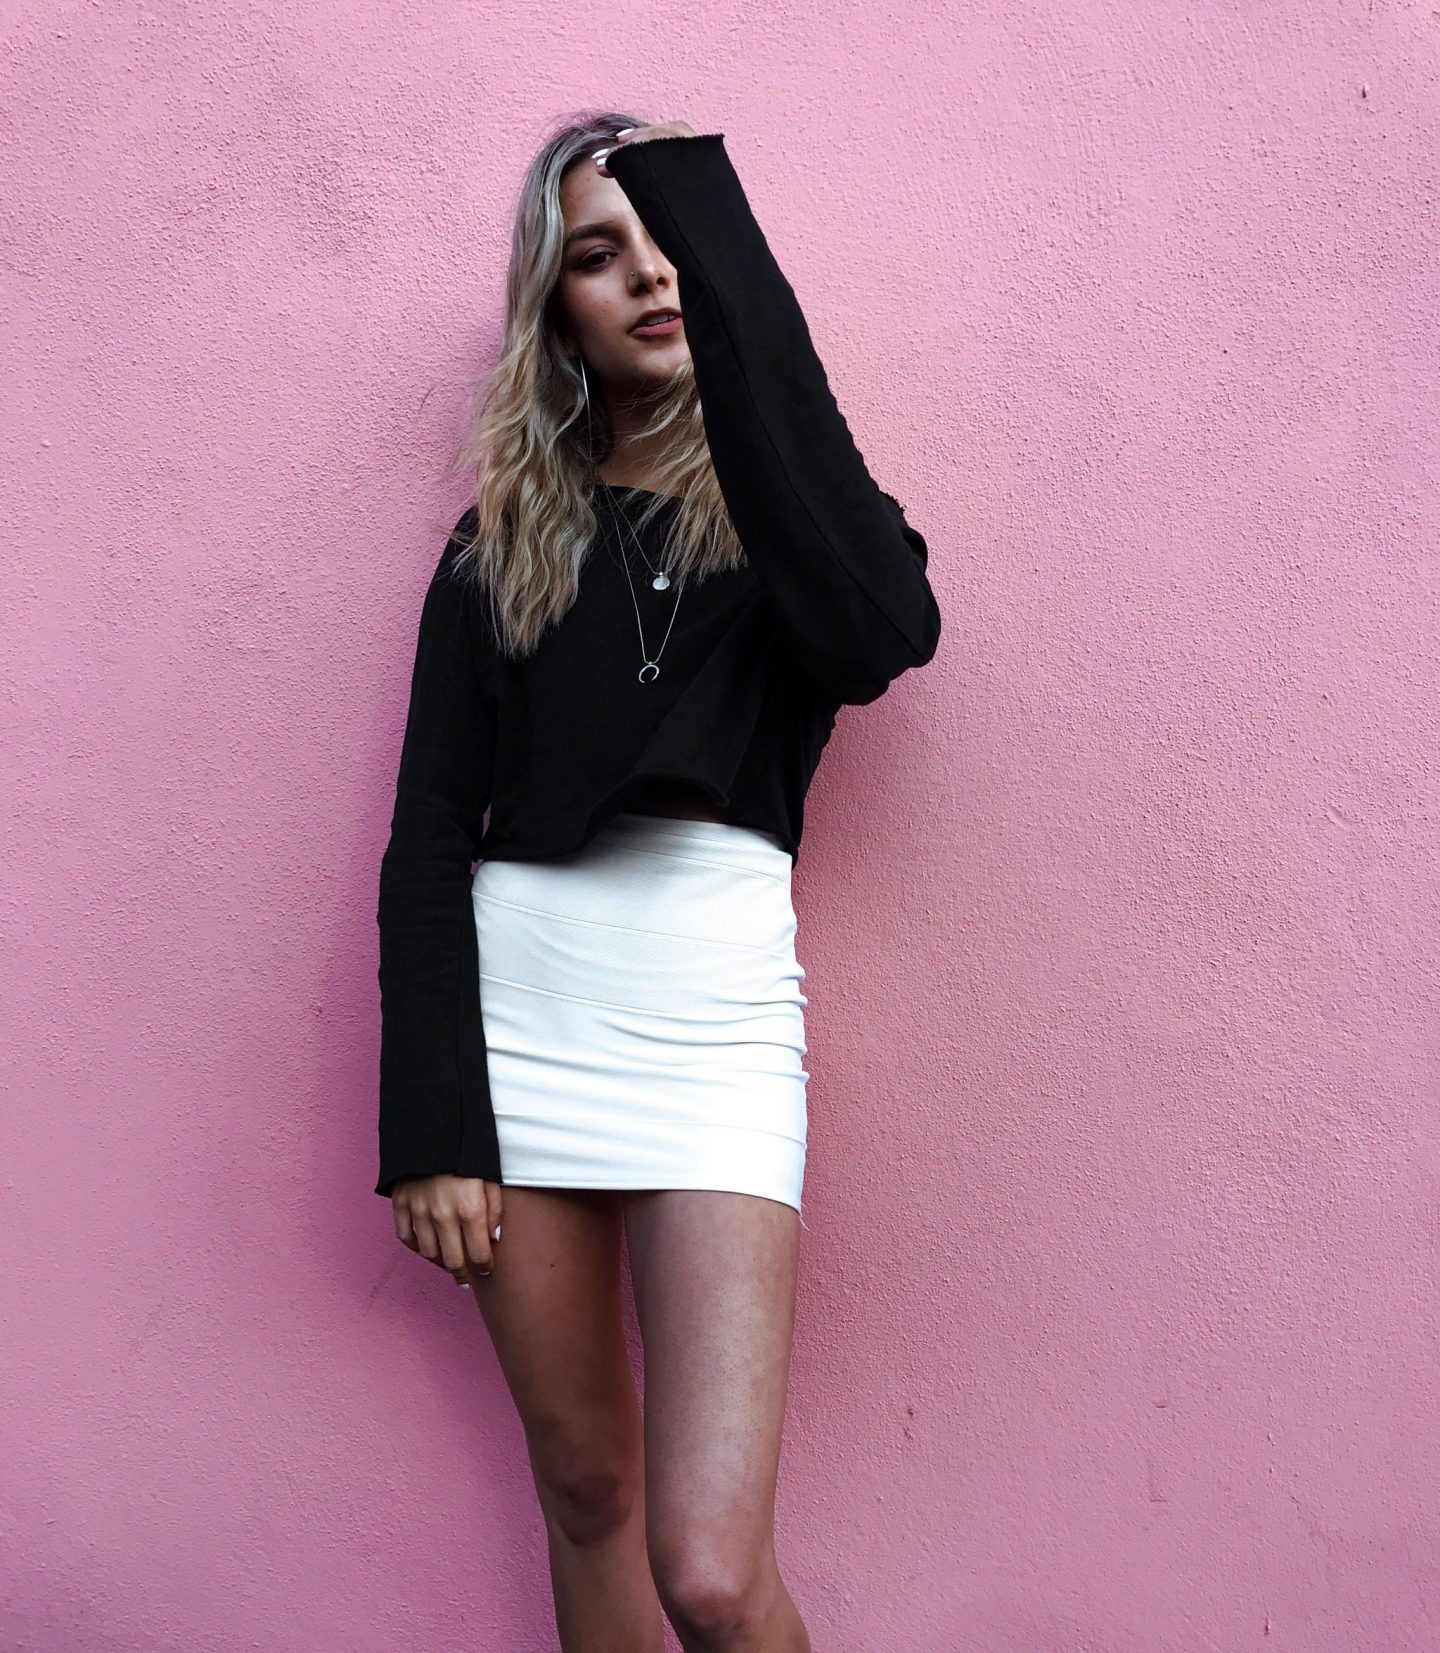 yasmin stefanie street style pink wall bandage skirt tennis points to defend